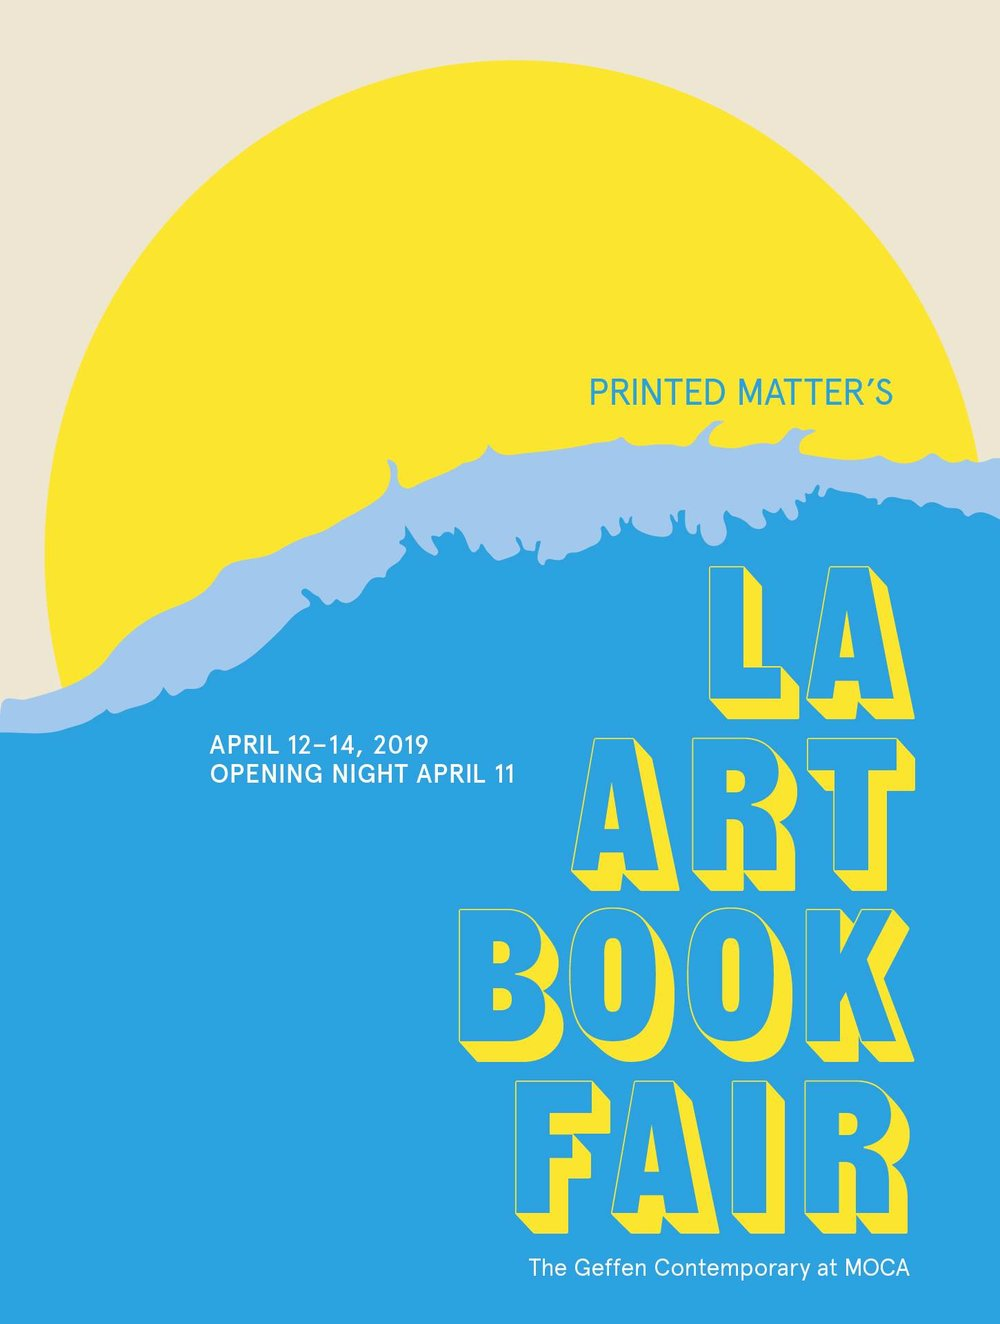 GALECSTASY & RAQUEL BELL - LIVE at L.A. Art Book Fair with MONTEZ PRESS RADIO. Original Meditation Med with Valerie Mccann + Galecstasy hour.